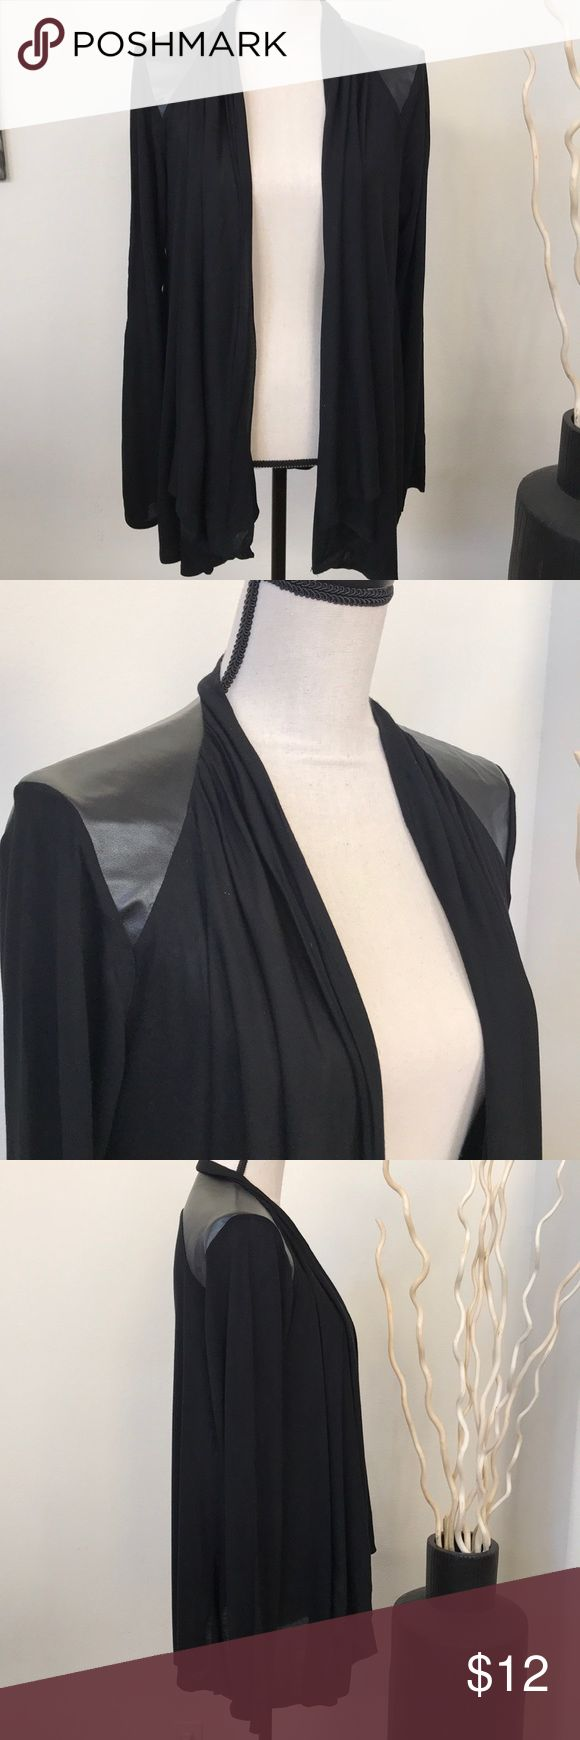 Black cardigan with faux leather detail on sleeve This cardigan is super light and is great to jazz up finish up an outfit. The upper shoulder has a pleated layering effect and gives a great detail to this simple cardigan. Cable & Gauge Sweaters Cardigans